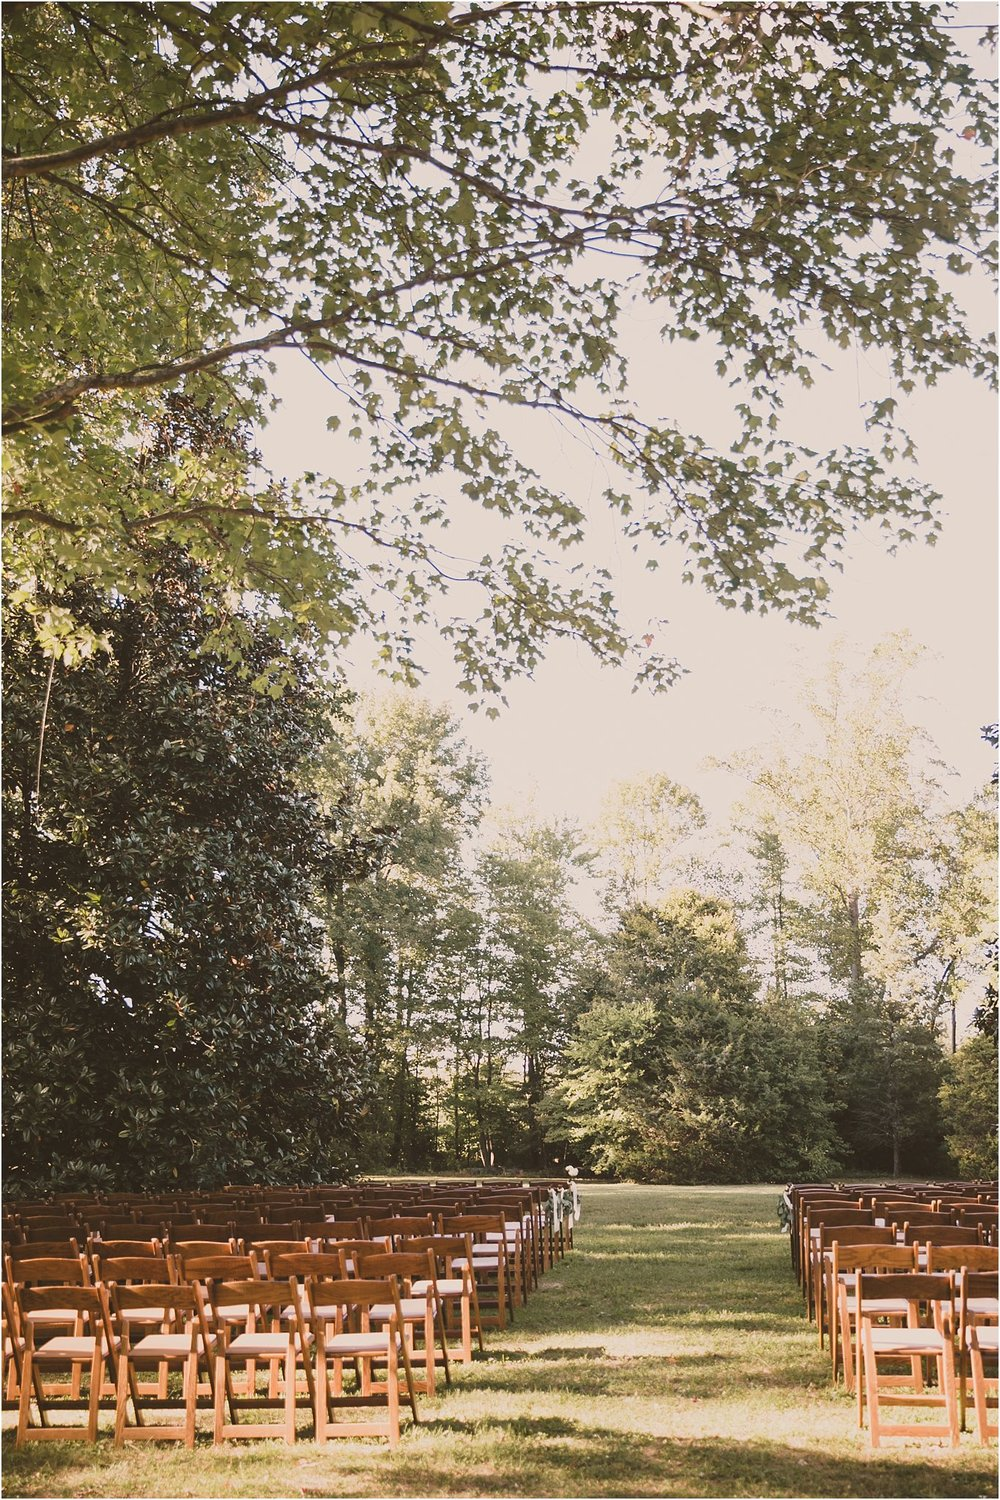 PattengalePhotography_BohoWedding_RichmondVirginia_Photographer_SevenSprings_Manor_Estate_Wedding_Hannah&Thomas_Elegant_Fall_Bohemian_blush_gold_farm__0047.jpg